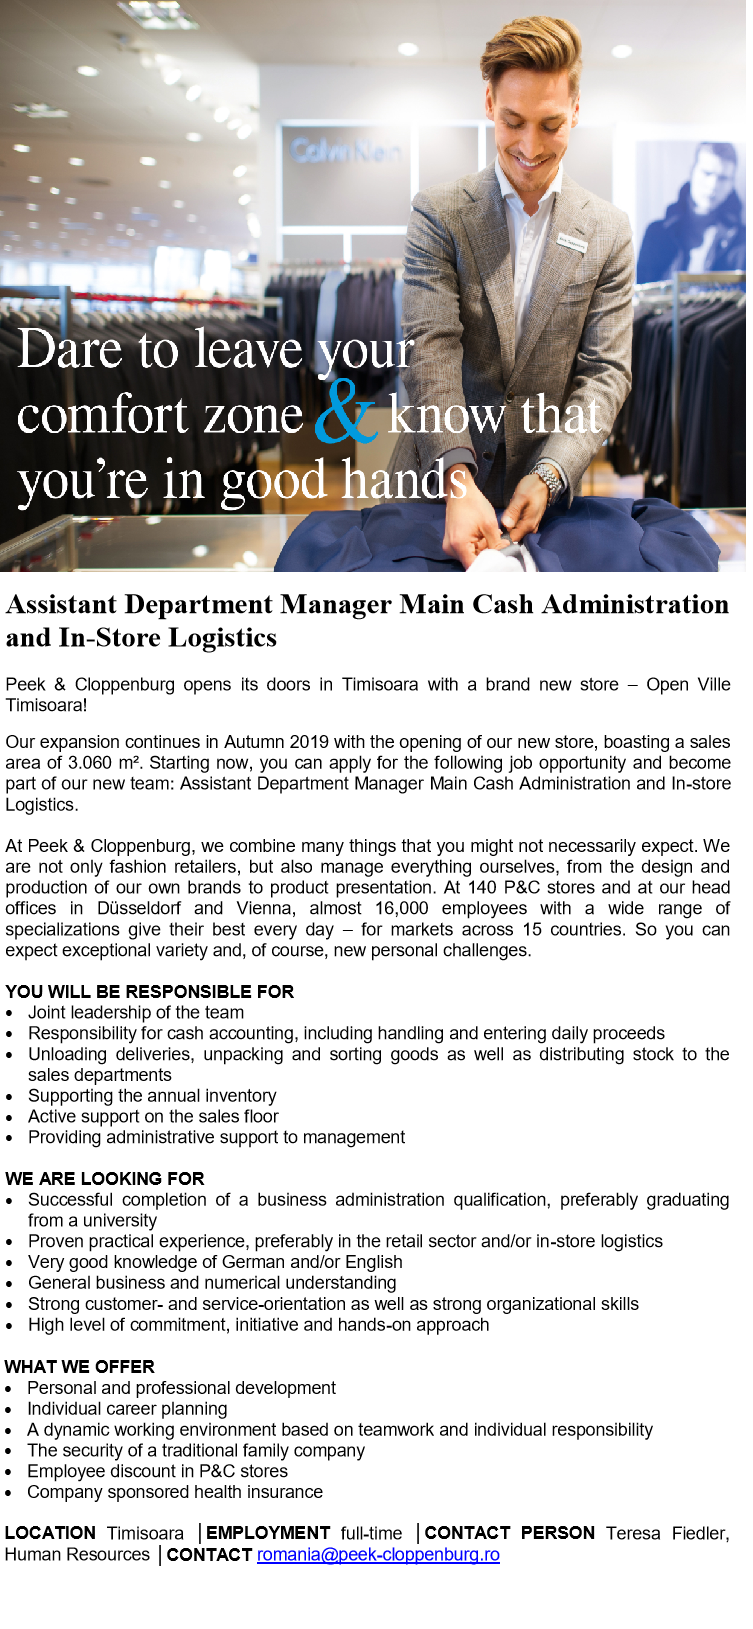 Assistant Department Manager Main Cash Administration and In-Store Logistics  Peek & Cloppenburg opens its doors in Timisoara with a brand new store – Open Ville Timisoara! Our expansion continues in Autumn 2019 with the opening of our new store, boasting a sales area of 3.060 m². Starting now, you can apply for the following job opportunity and become part of our new team: Assistant Department Manager Main Cash Administration and In-store Logistics.  At Peek & Cloppenburg, we combine many things that you might not necessarily expect. We are not only fashion retailers, but also manage everything ourselves, from the design and production of our own brands to product presentation. At 140 P&C stores and at our head offices in Düsseldorf and Vienna, almost 16,000 employees with a wide range of specializations give their best every day – for markets across 15 countries. So you can expect exceptional variety and, of course, new personal challenges.  YOU WILL BE RESPONSIBLE FOR Joint leadership of the team Responsibility for cash accounting, including handling and entering daily proceeds Unloading deliveries, unpacking and sorting goods as well as distributing stock to the sales departments Supporting the annual inventory Active support on the sales floor Providing administrative support to management WE ARE LOOKING FOR Successful completion of a business administration qualification, preferably graduating from a university Proven practical experience, preferably in the retail sector and/or in-store logistics Very good knowledge of German and/or English General business and numerical understanding Strong customer- and service-orientation as well as strong organizational skills High level of commitment, initiative and hands-on approach WHAT WE OFFER Personal and professional development Individual career planning A dynamic working environment based on teamwork and individual responsibility The security of a traditional family company Employee discount in P&C stores Company 